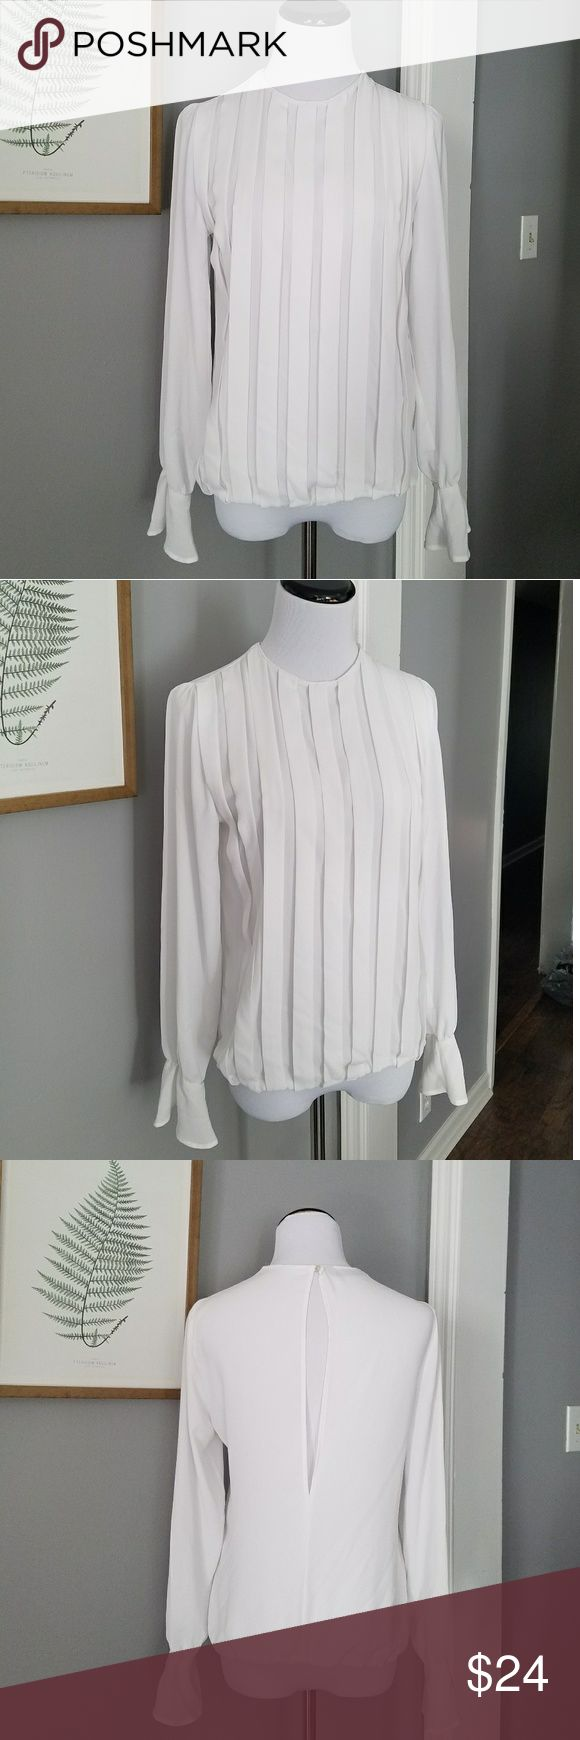 Zara White Pleated Open Back Blouse All white blouse with long sleeves with ruffle shape at wrists. Pleated in front. Open Back. Excellent condition. Perfect for looking polished at a holiday party. Zara Tops Blouses